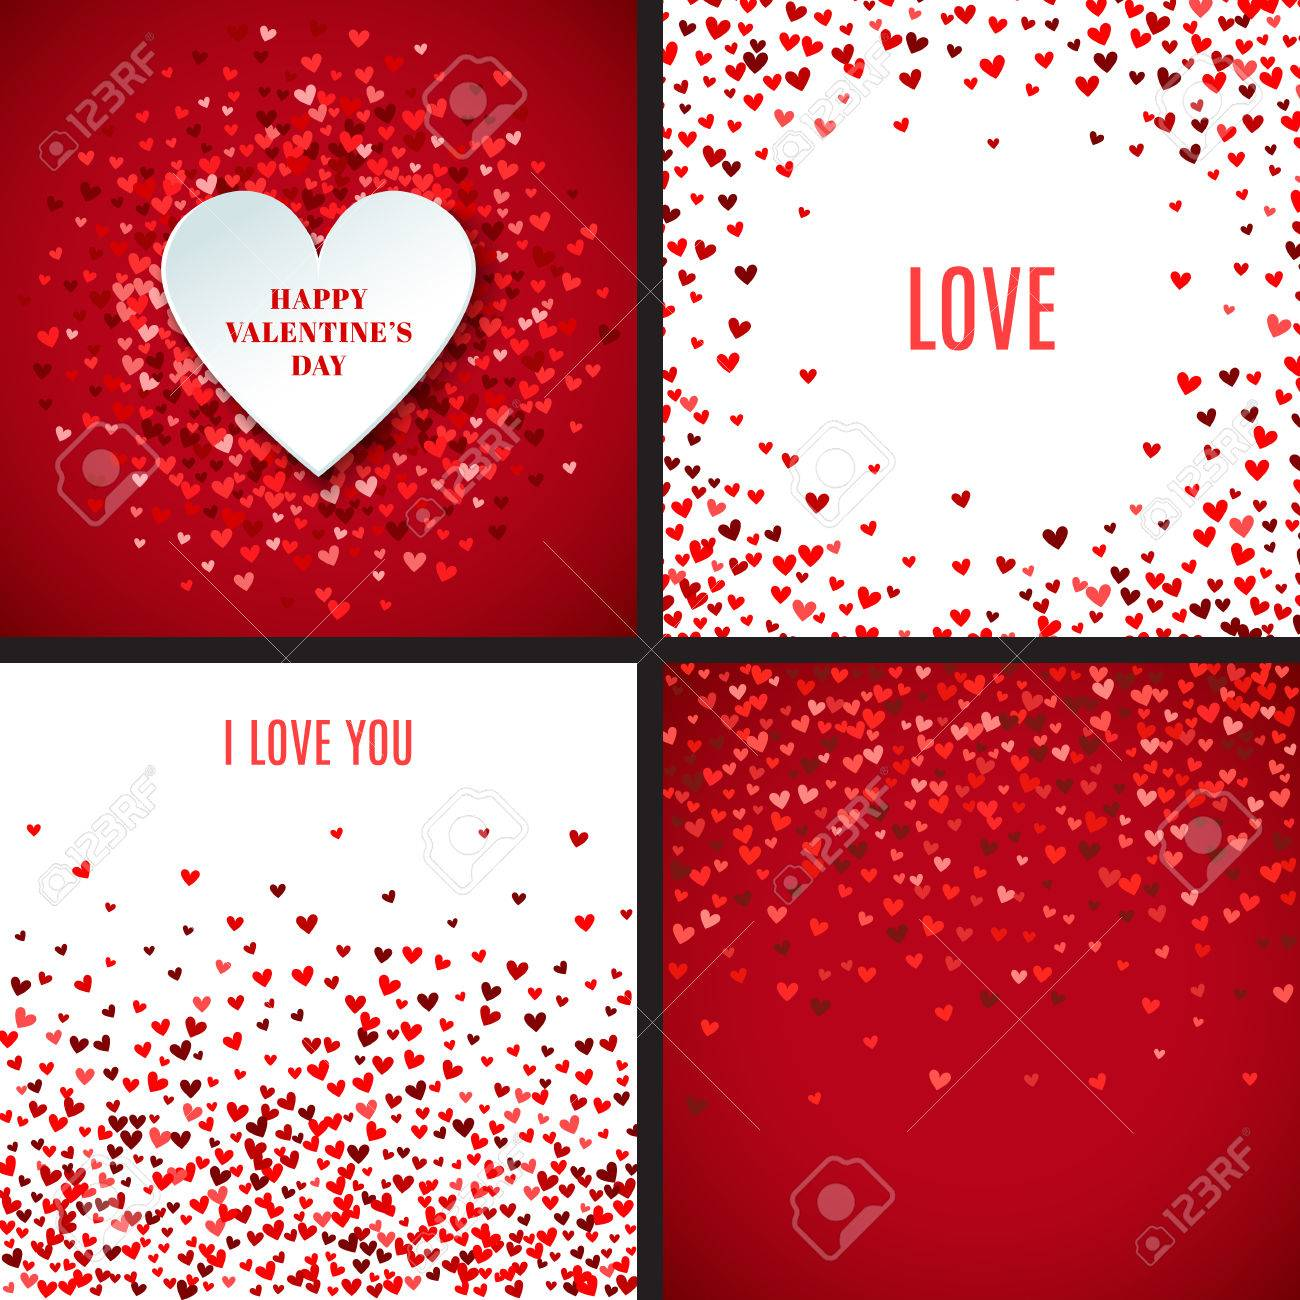 Set of romantic red heart backgrounds. Vector illustration for holiday design. Many flying hearts on white and red background. For wedding card, valentine's day greetings, lovely frame. - 51334398